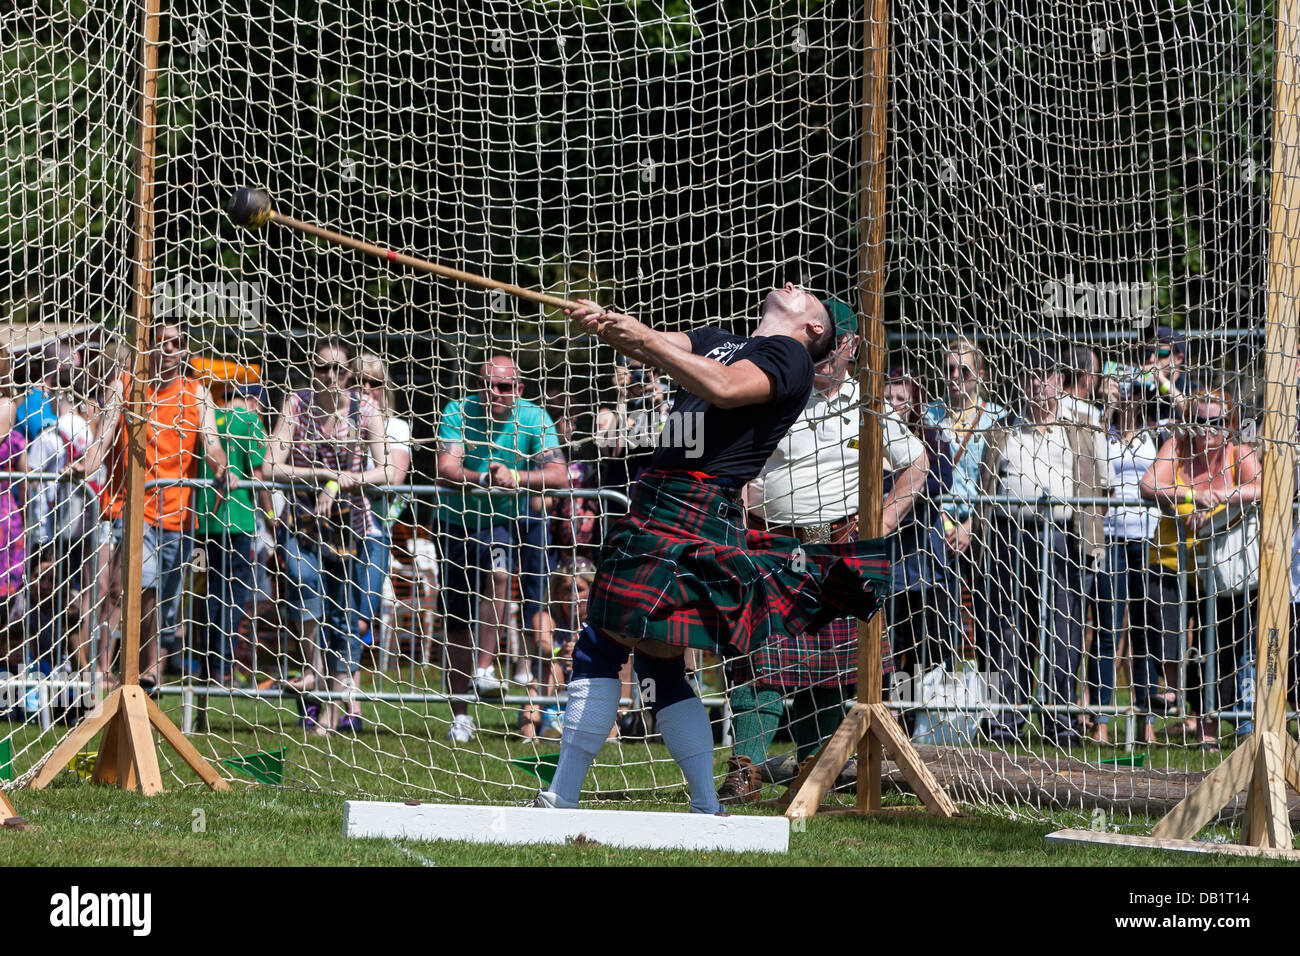 Competitor at Scottish highland games throwing the 22 pound hammer, a traditional Scottish competition. - Stock Image